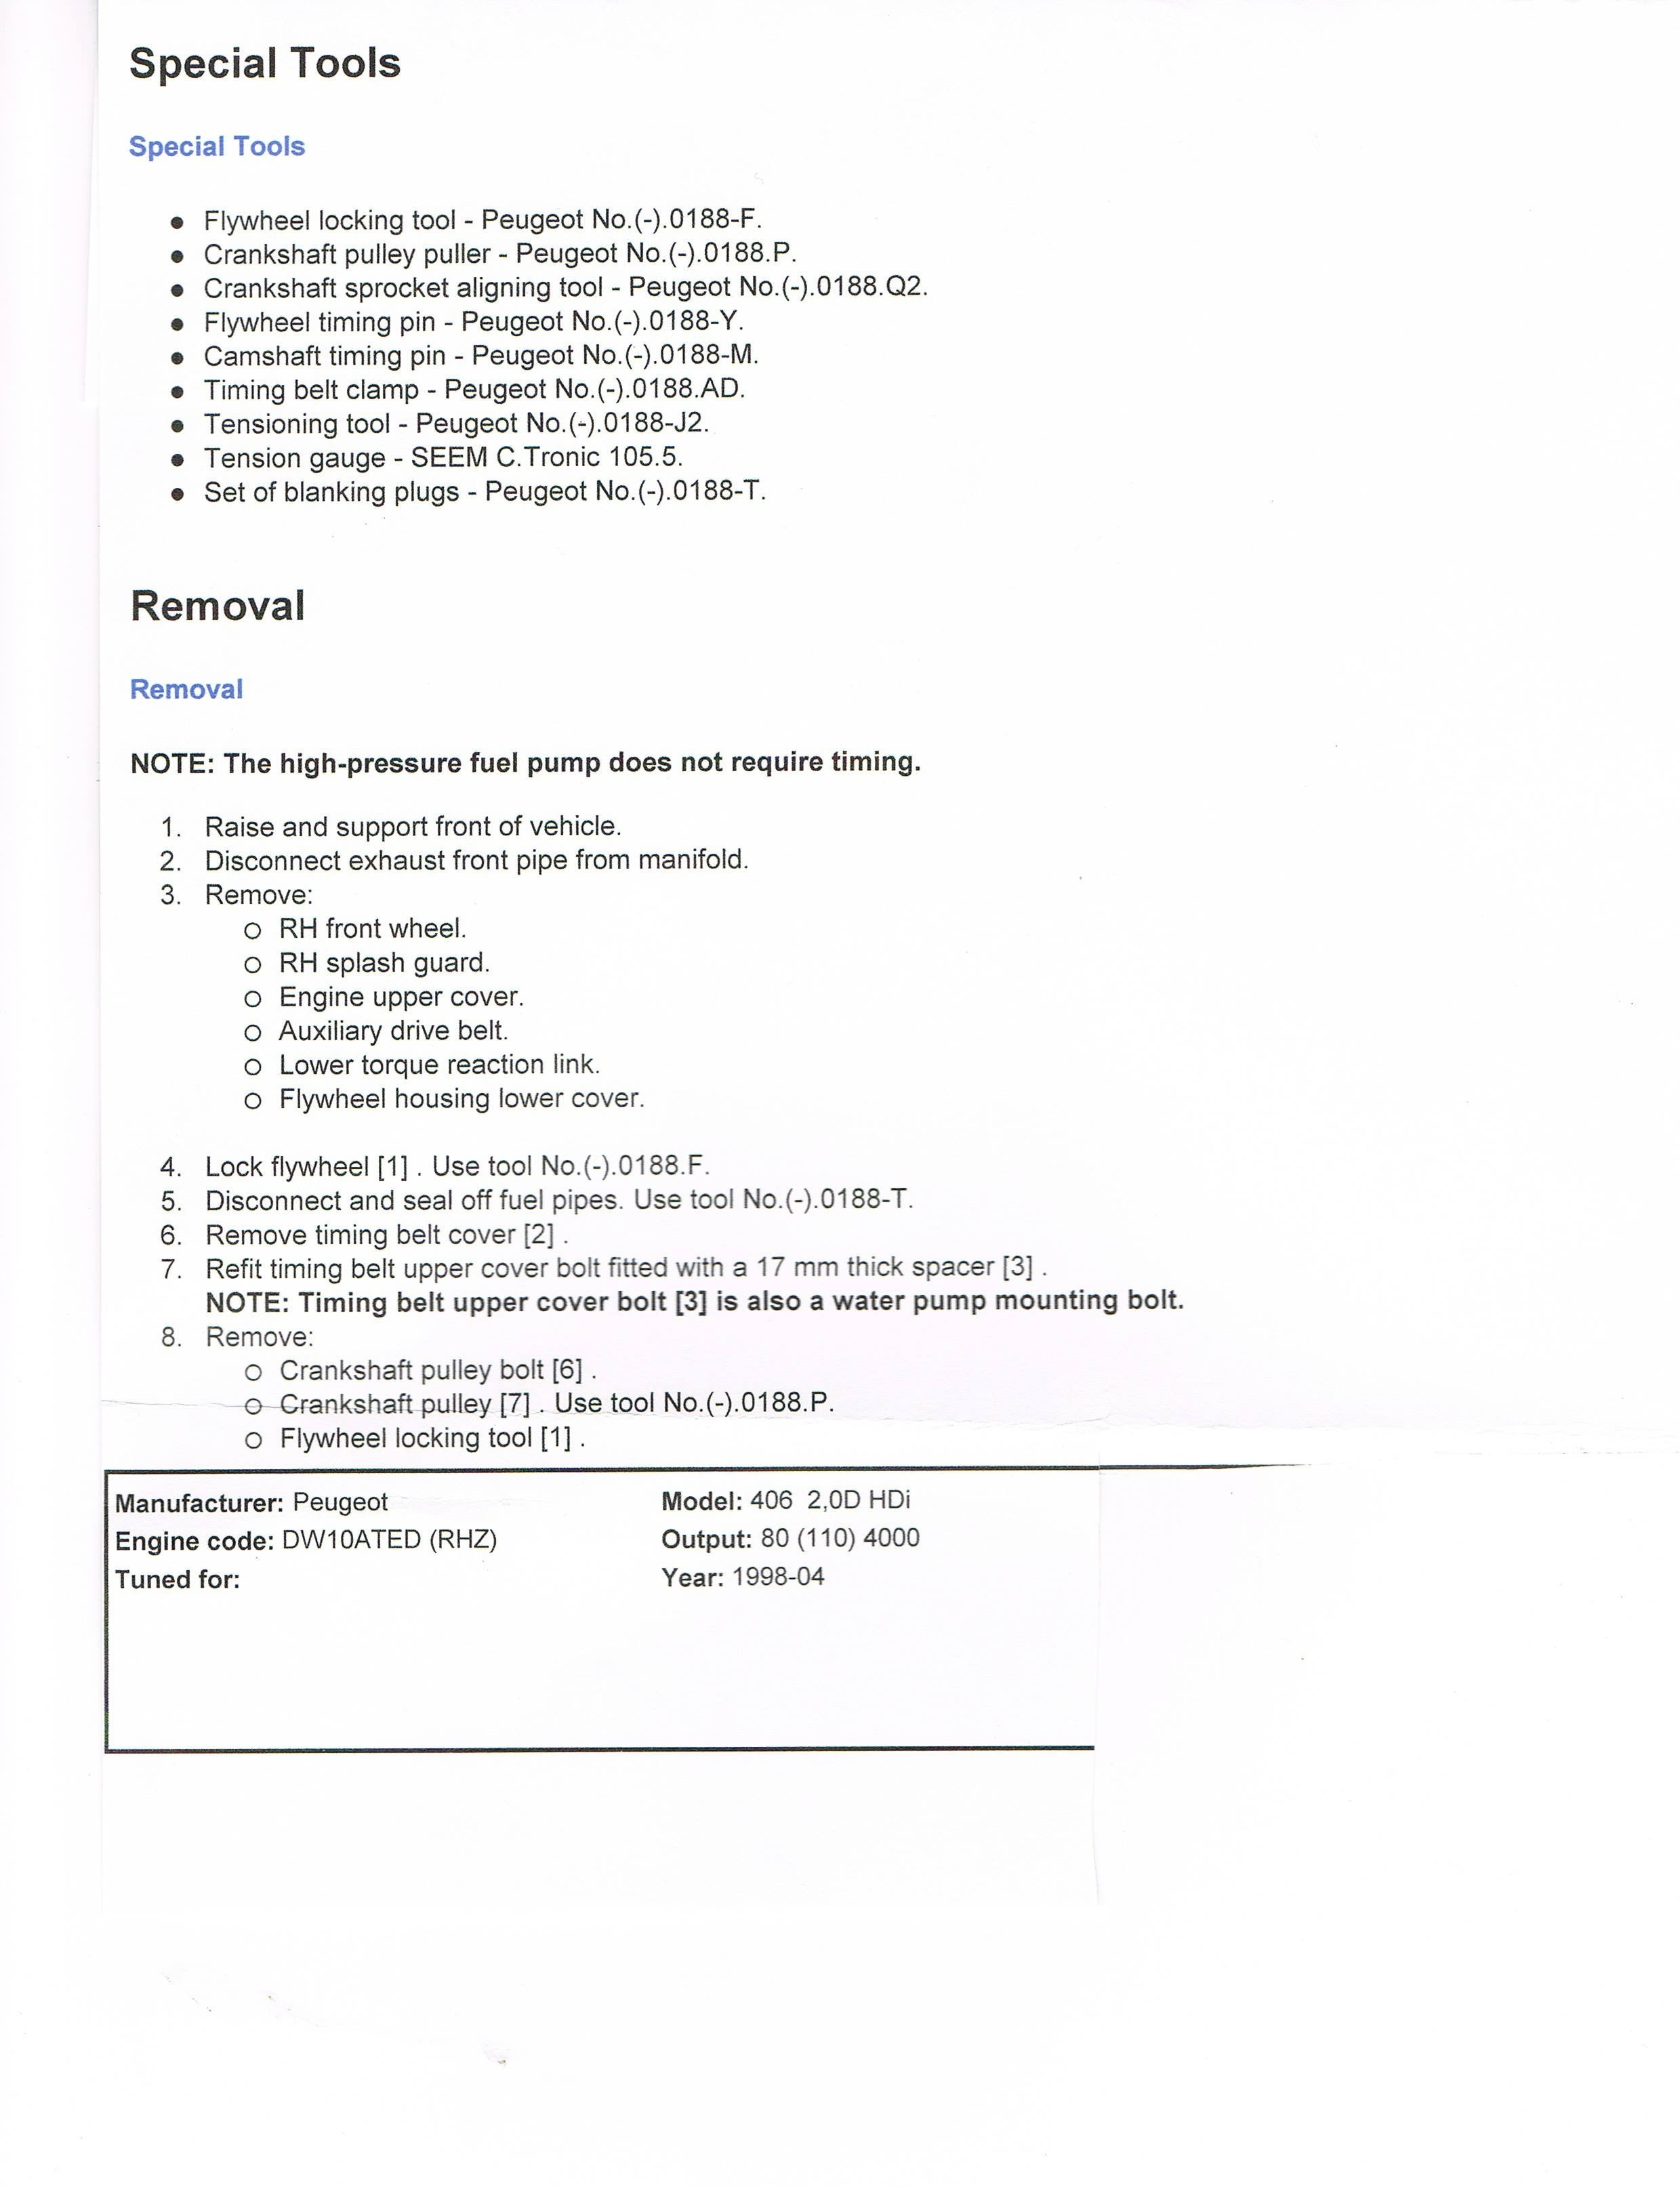 employee verification letter template example-Employee Verification Letter New Cfo Resume Template Inspirational Actor Resumes 0d – Letter Templates 7-k